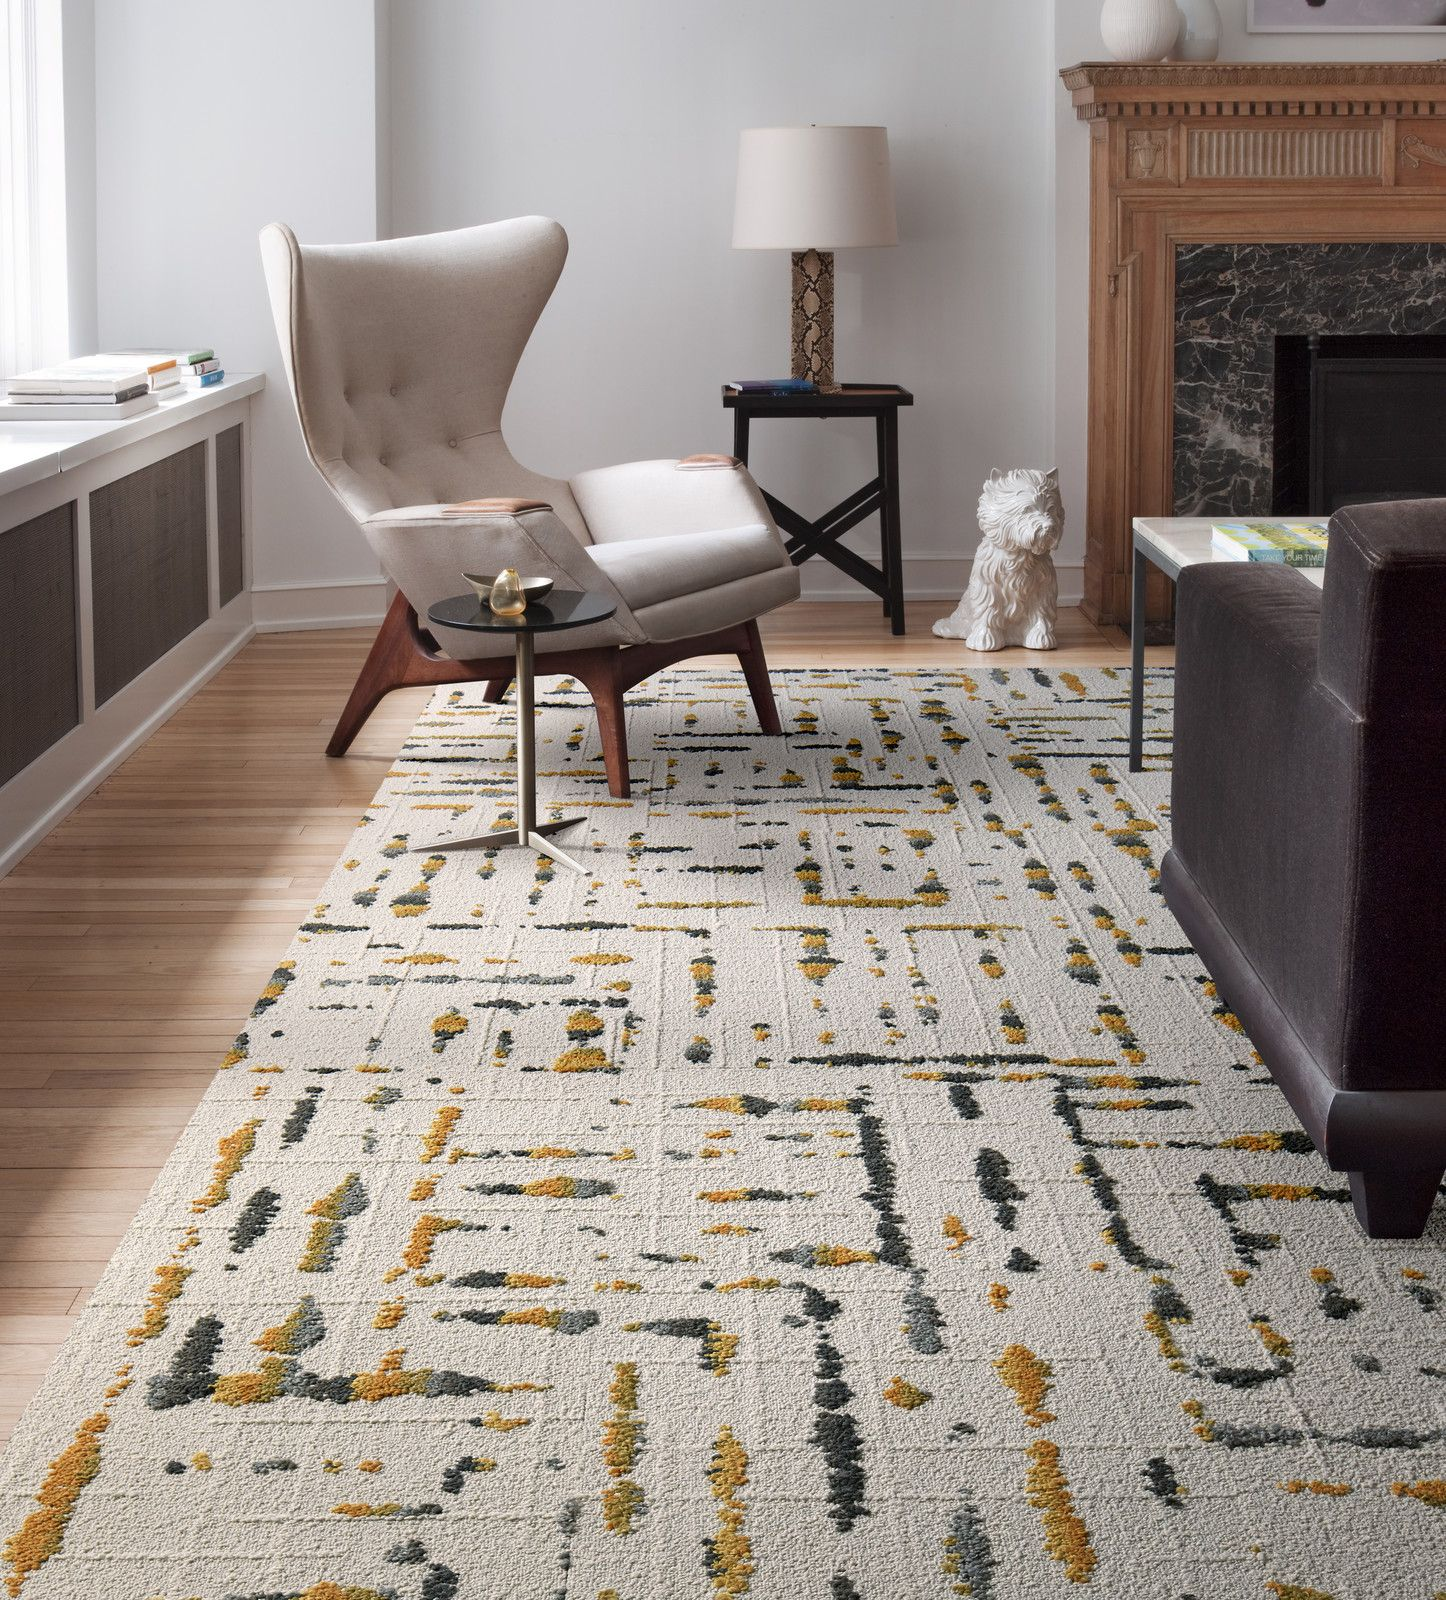 Mix and match the new flor rug styles to your hearts content mix and match the new flor rug styles to your hearts content baanklon Gallery